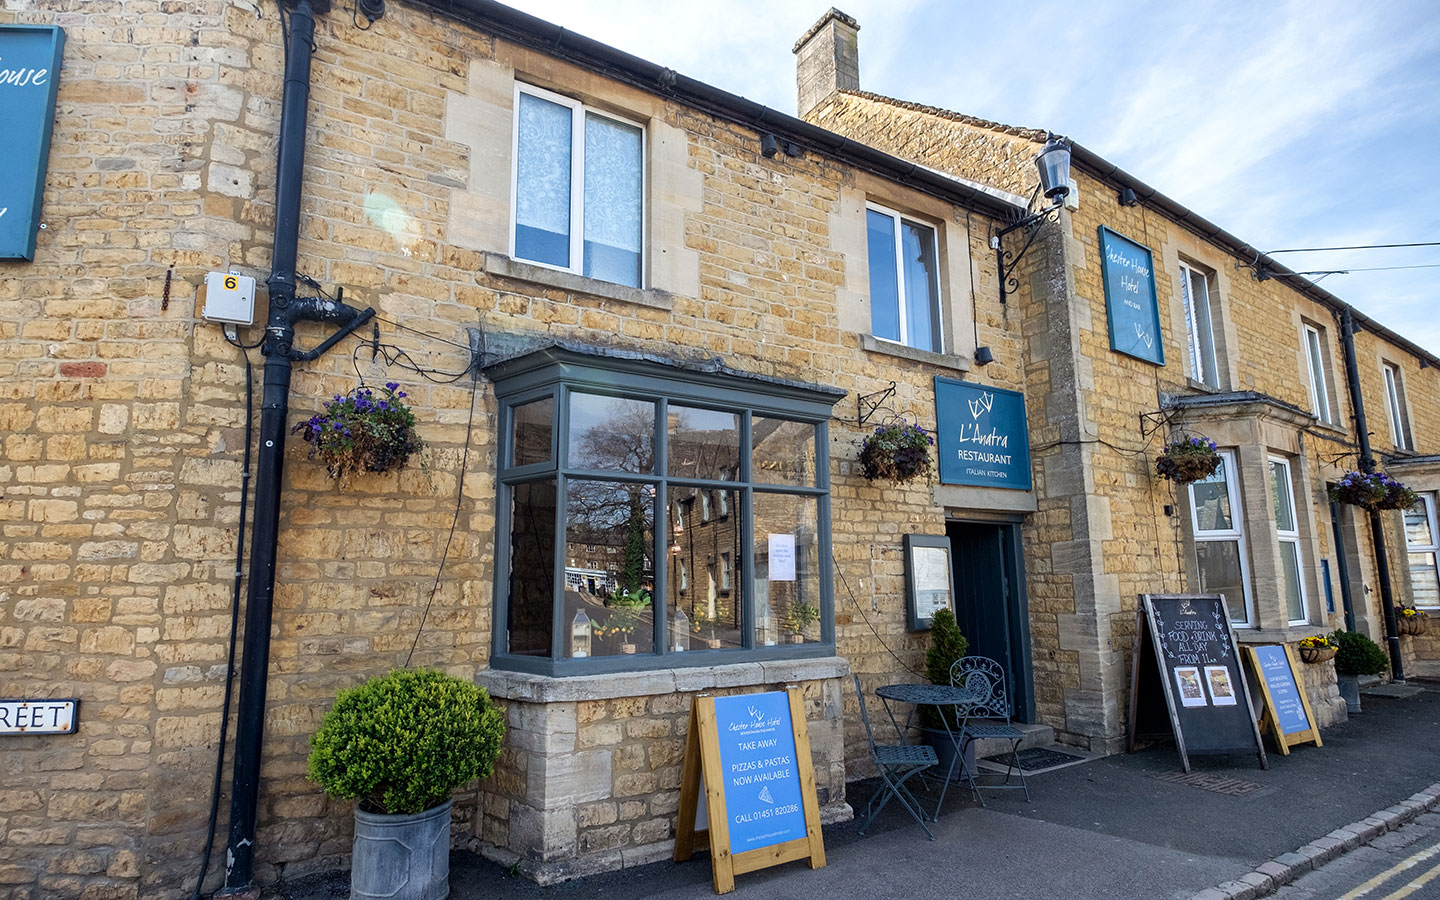 The Chester House Hotel and L'Anatra restaurant in Bourton-on-the-Water, Cotswolds